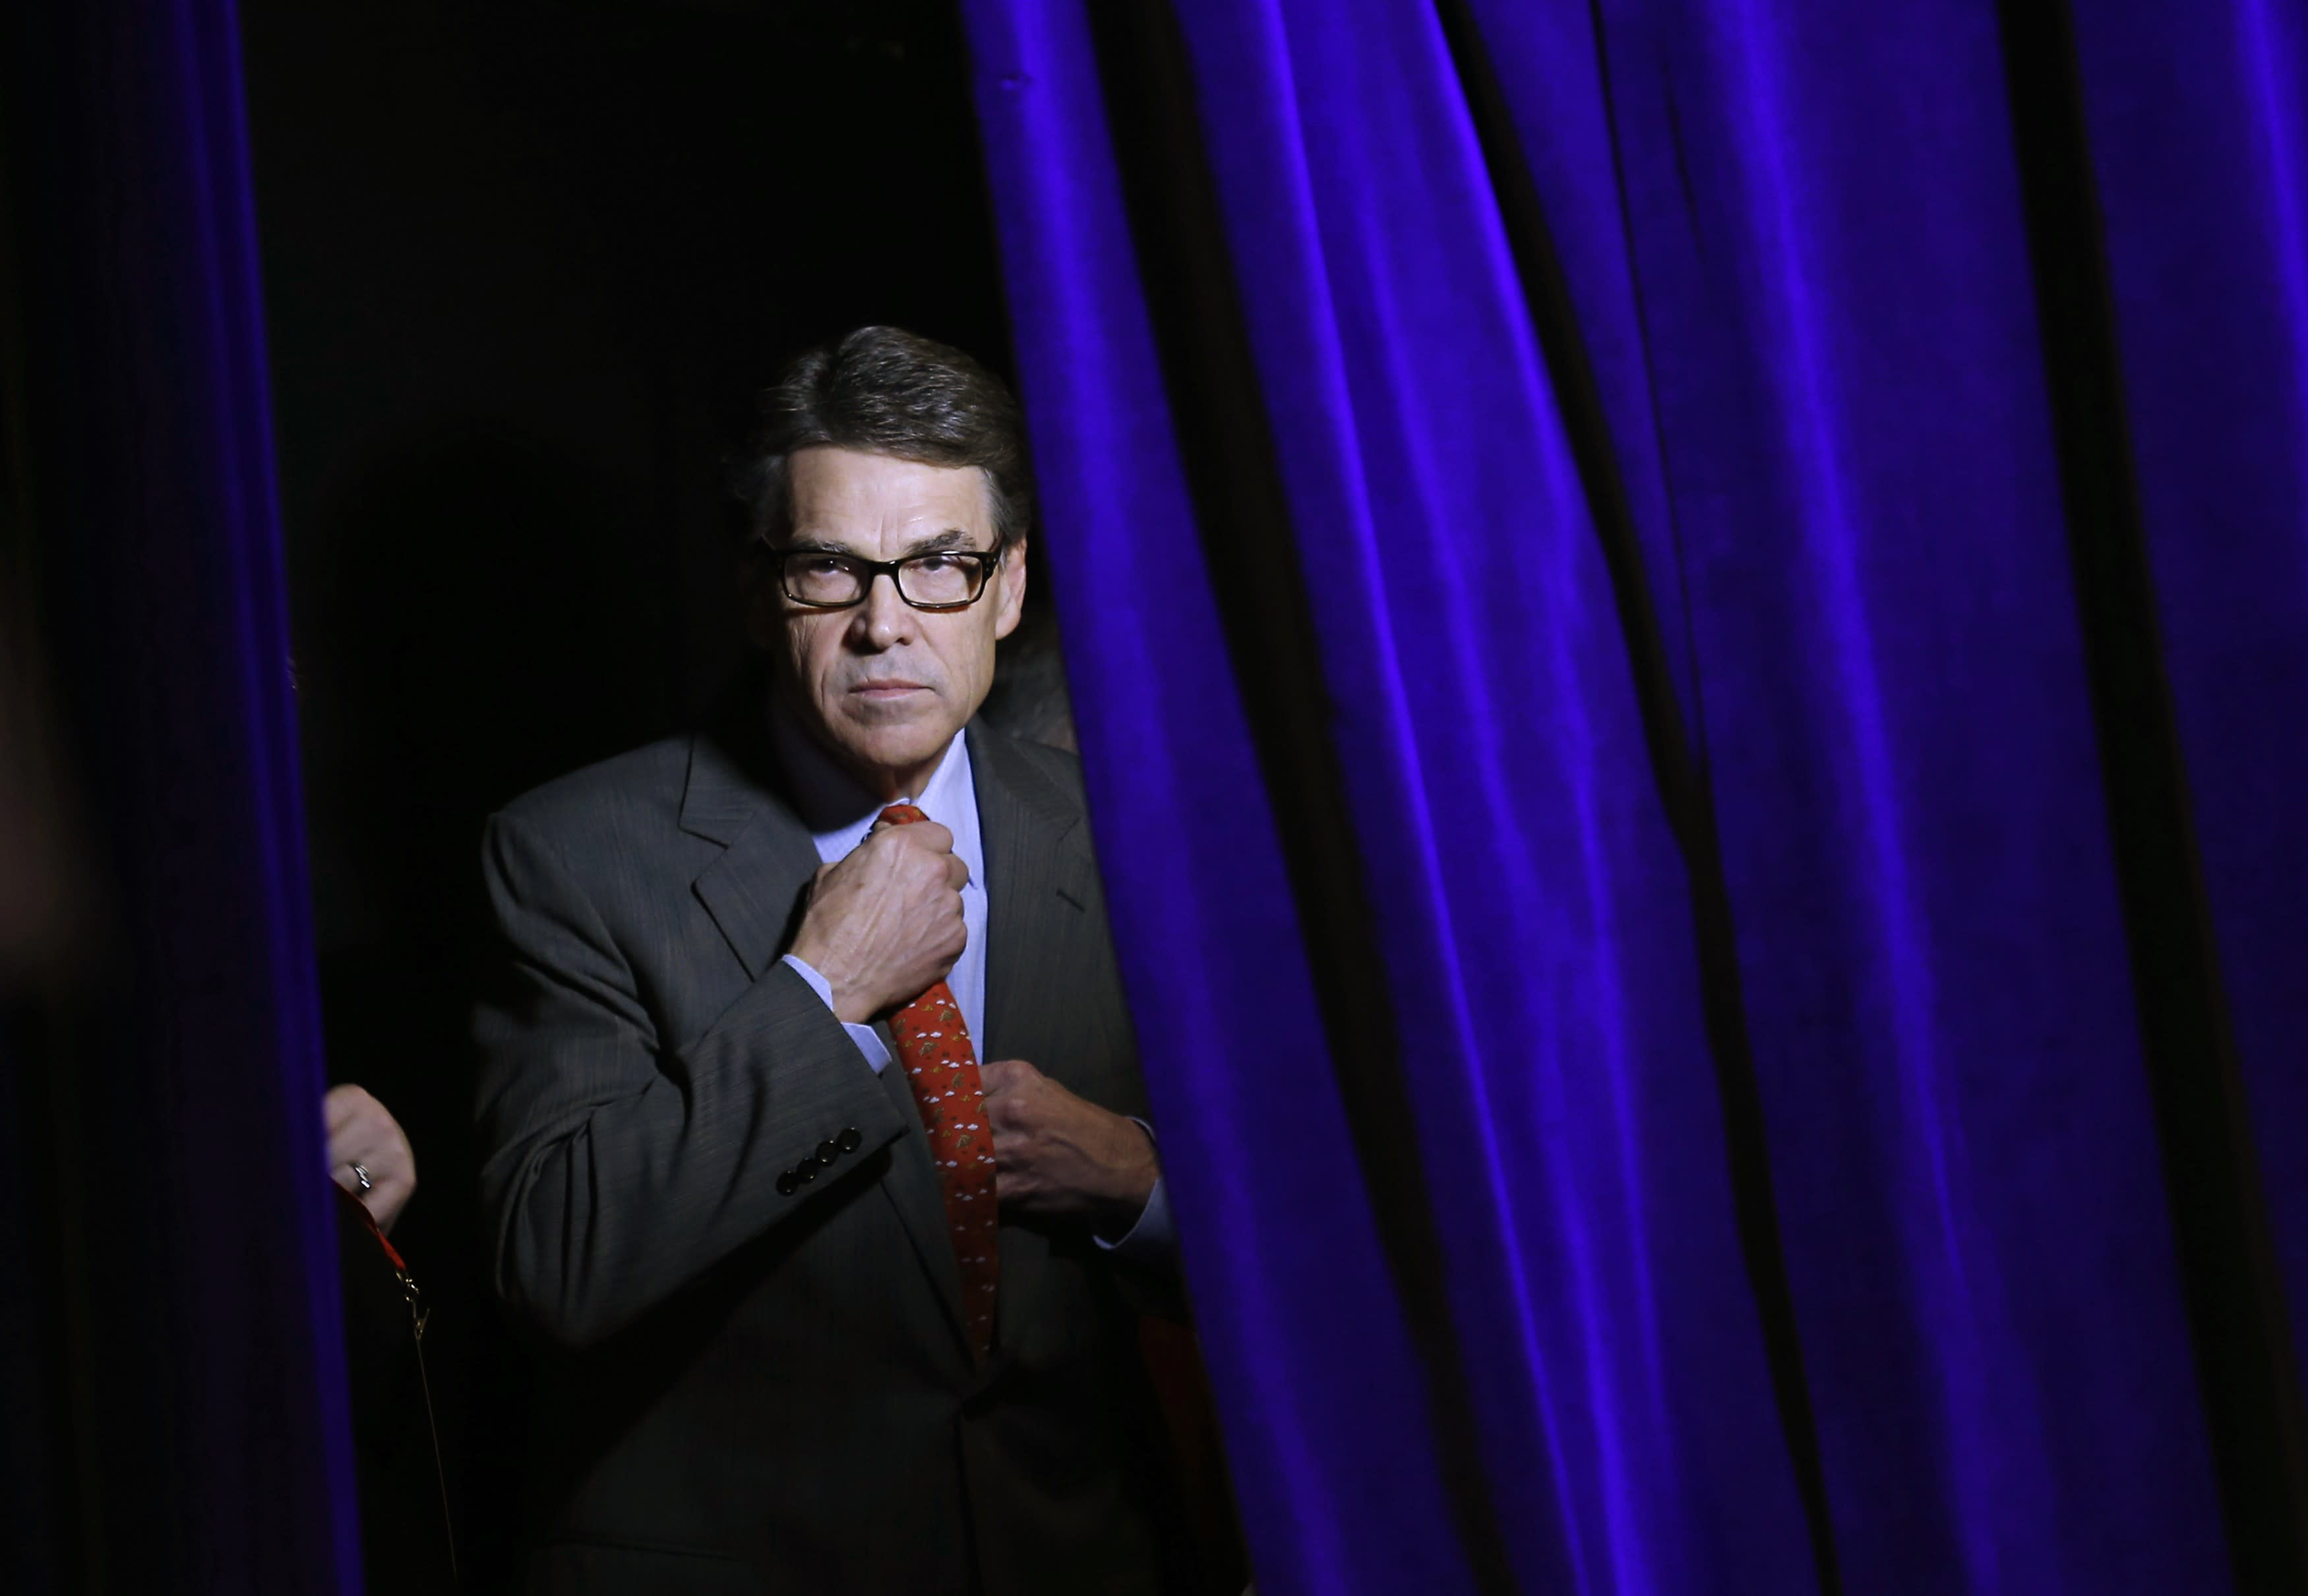 Former Governor of Texas Rick Perry adjusts his tie as he listens to his introduction from the side of the stage at the Freedom Summit in Des Moines, Iowa, January 24, 2015. REUTERS/Jim Young (UNITED STATES - Tags: POLITICS)